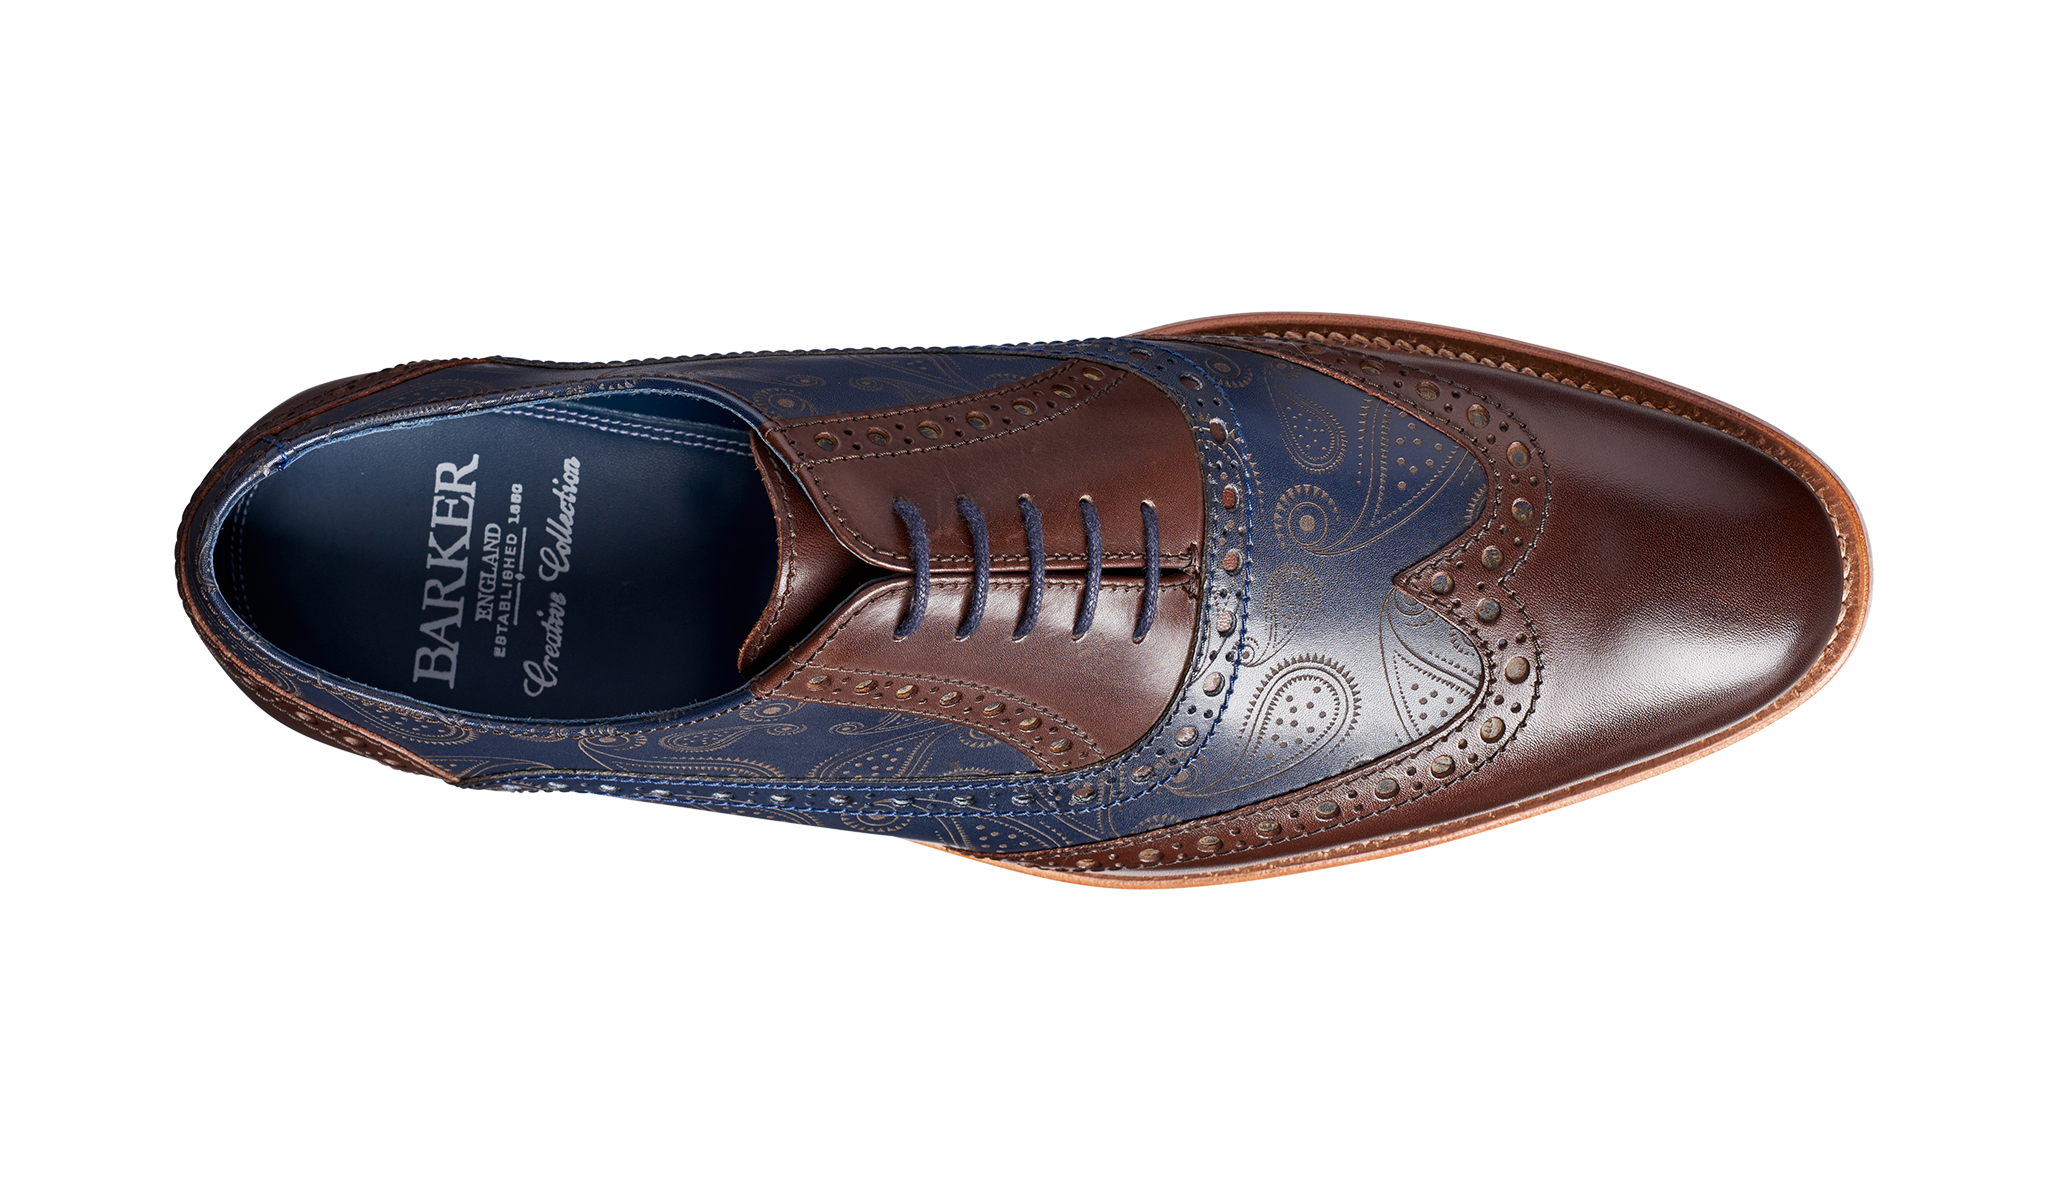 2a48eb1f40913 Grant - Walnut / Navy Calf / Paisley Laser | Barker Shoes UK